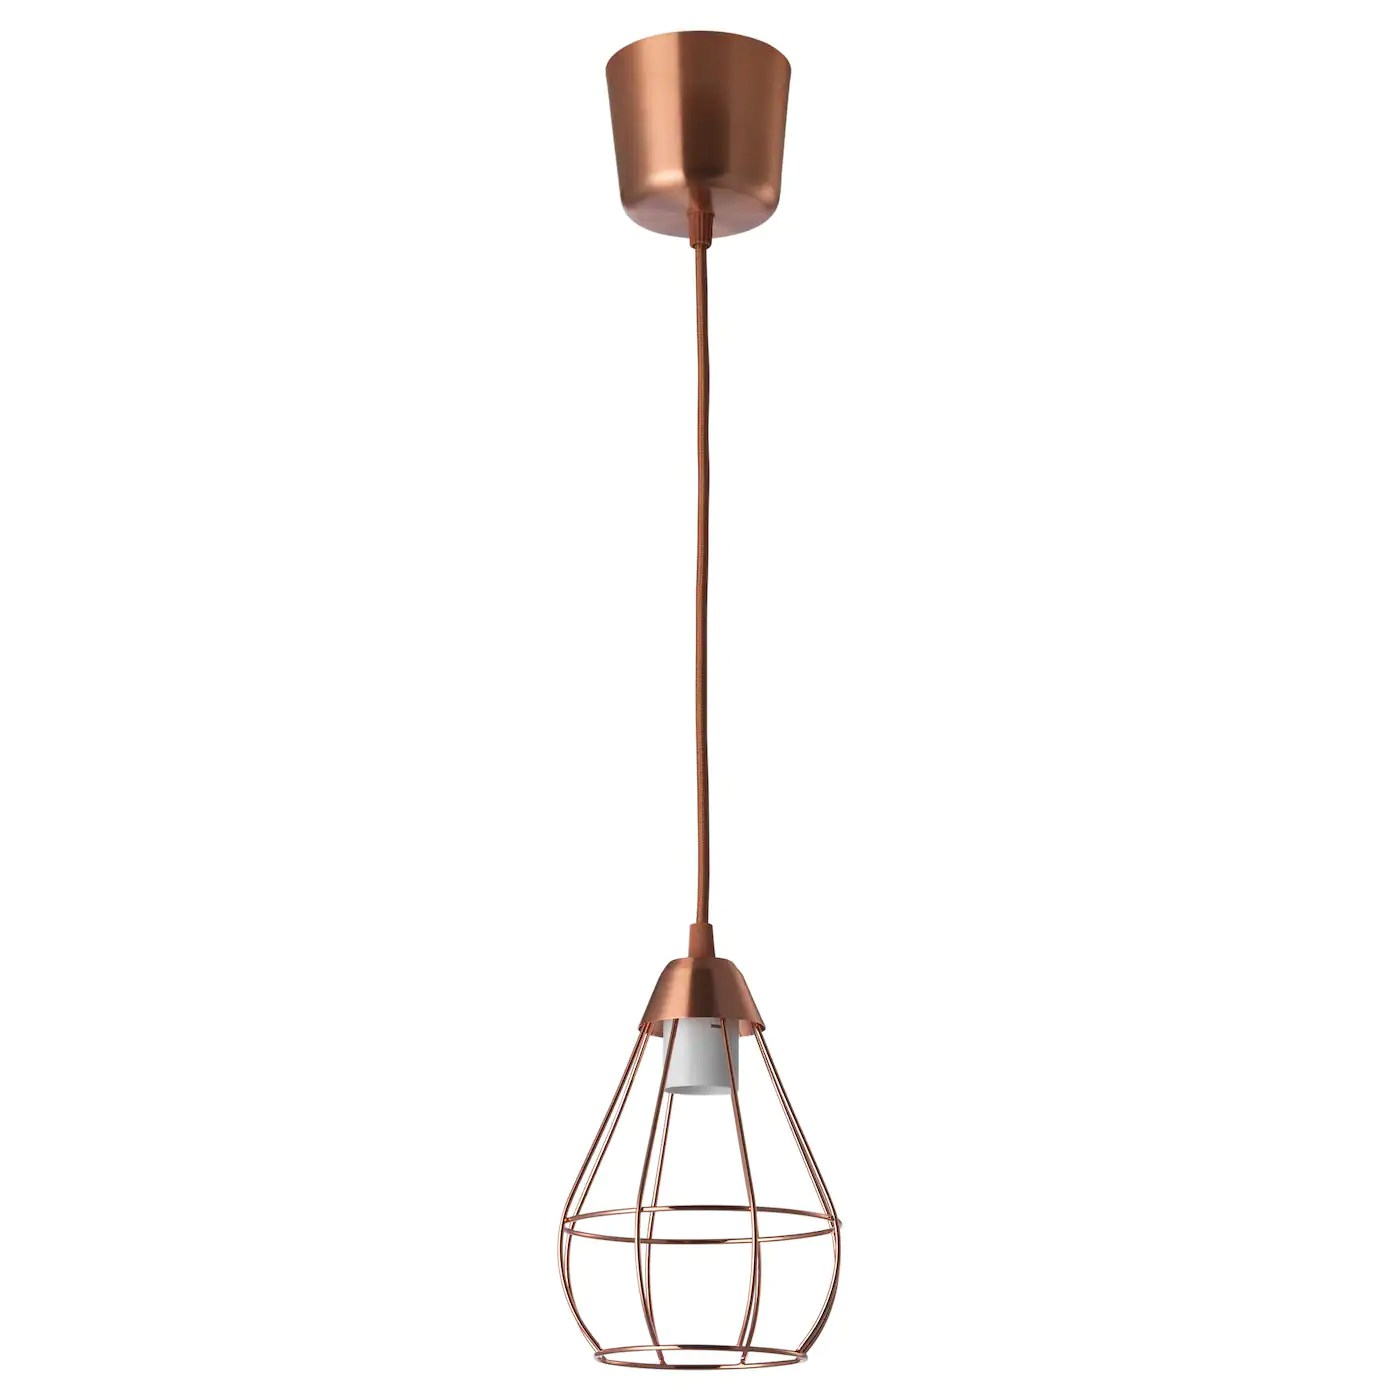 Led Hanglamp Ikea SlÄttbo Pendant Lamp Copper Colour 14 5 Cm Ikea